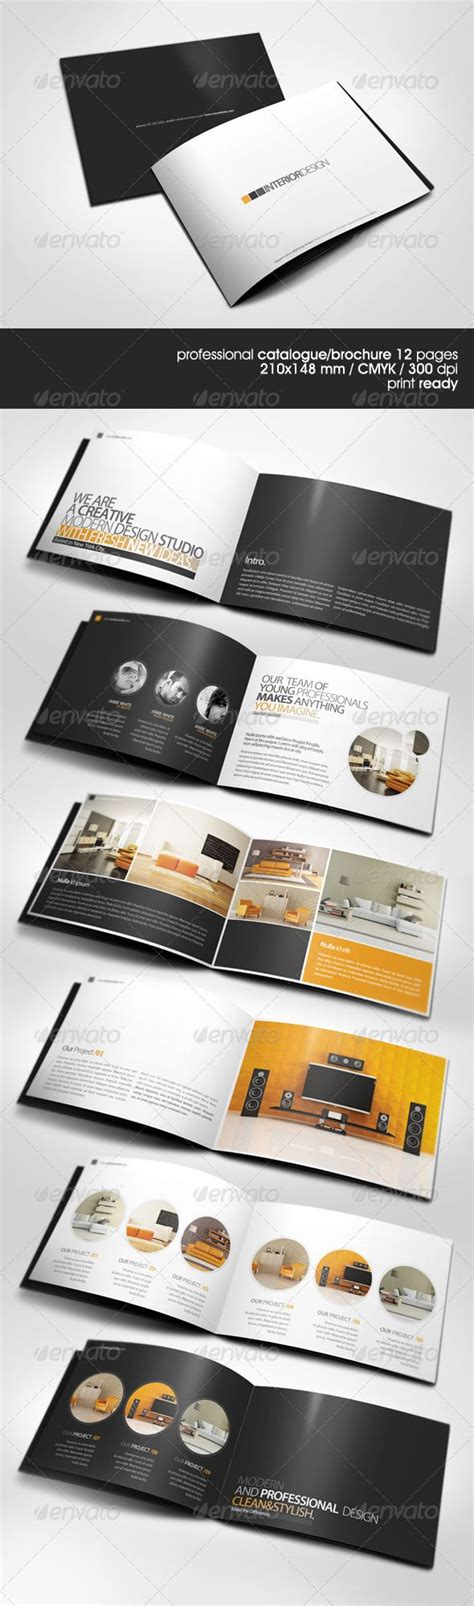 home design best photos of catalog graphic design graphic best 25 catalog ideas on pinterest booklet layout